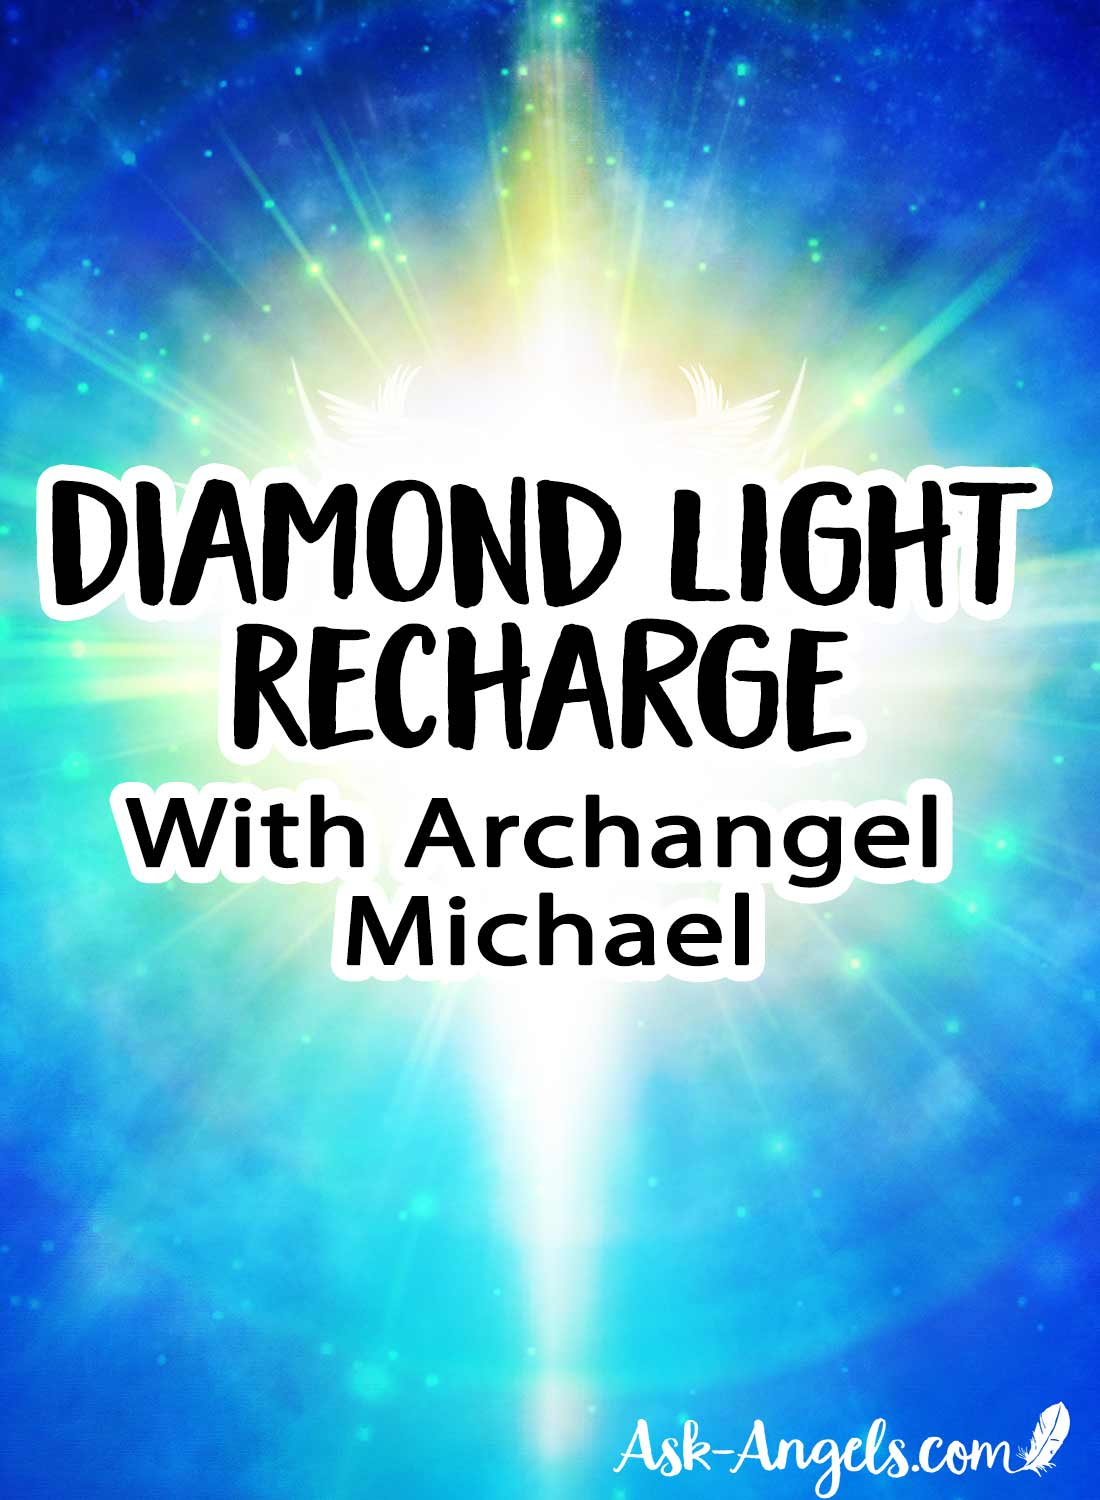 Diamond Light Recharge with Archangel Michael